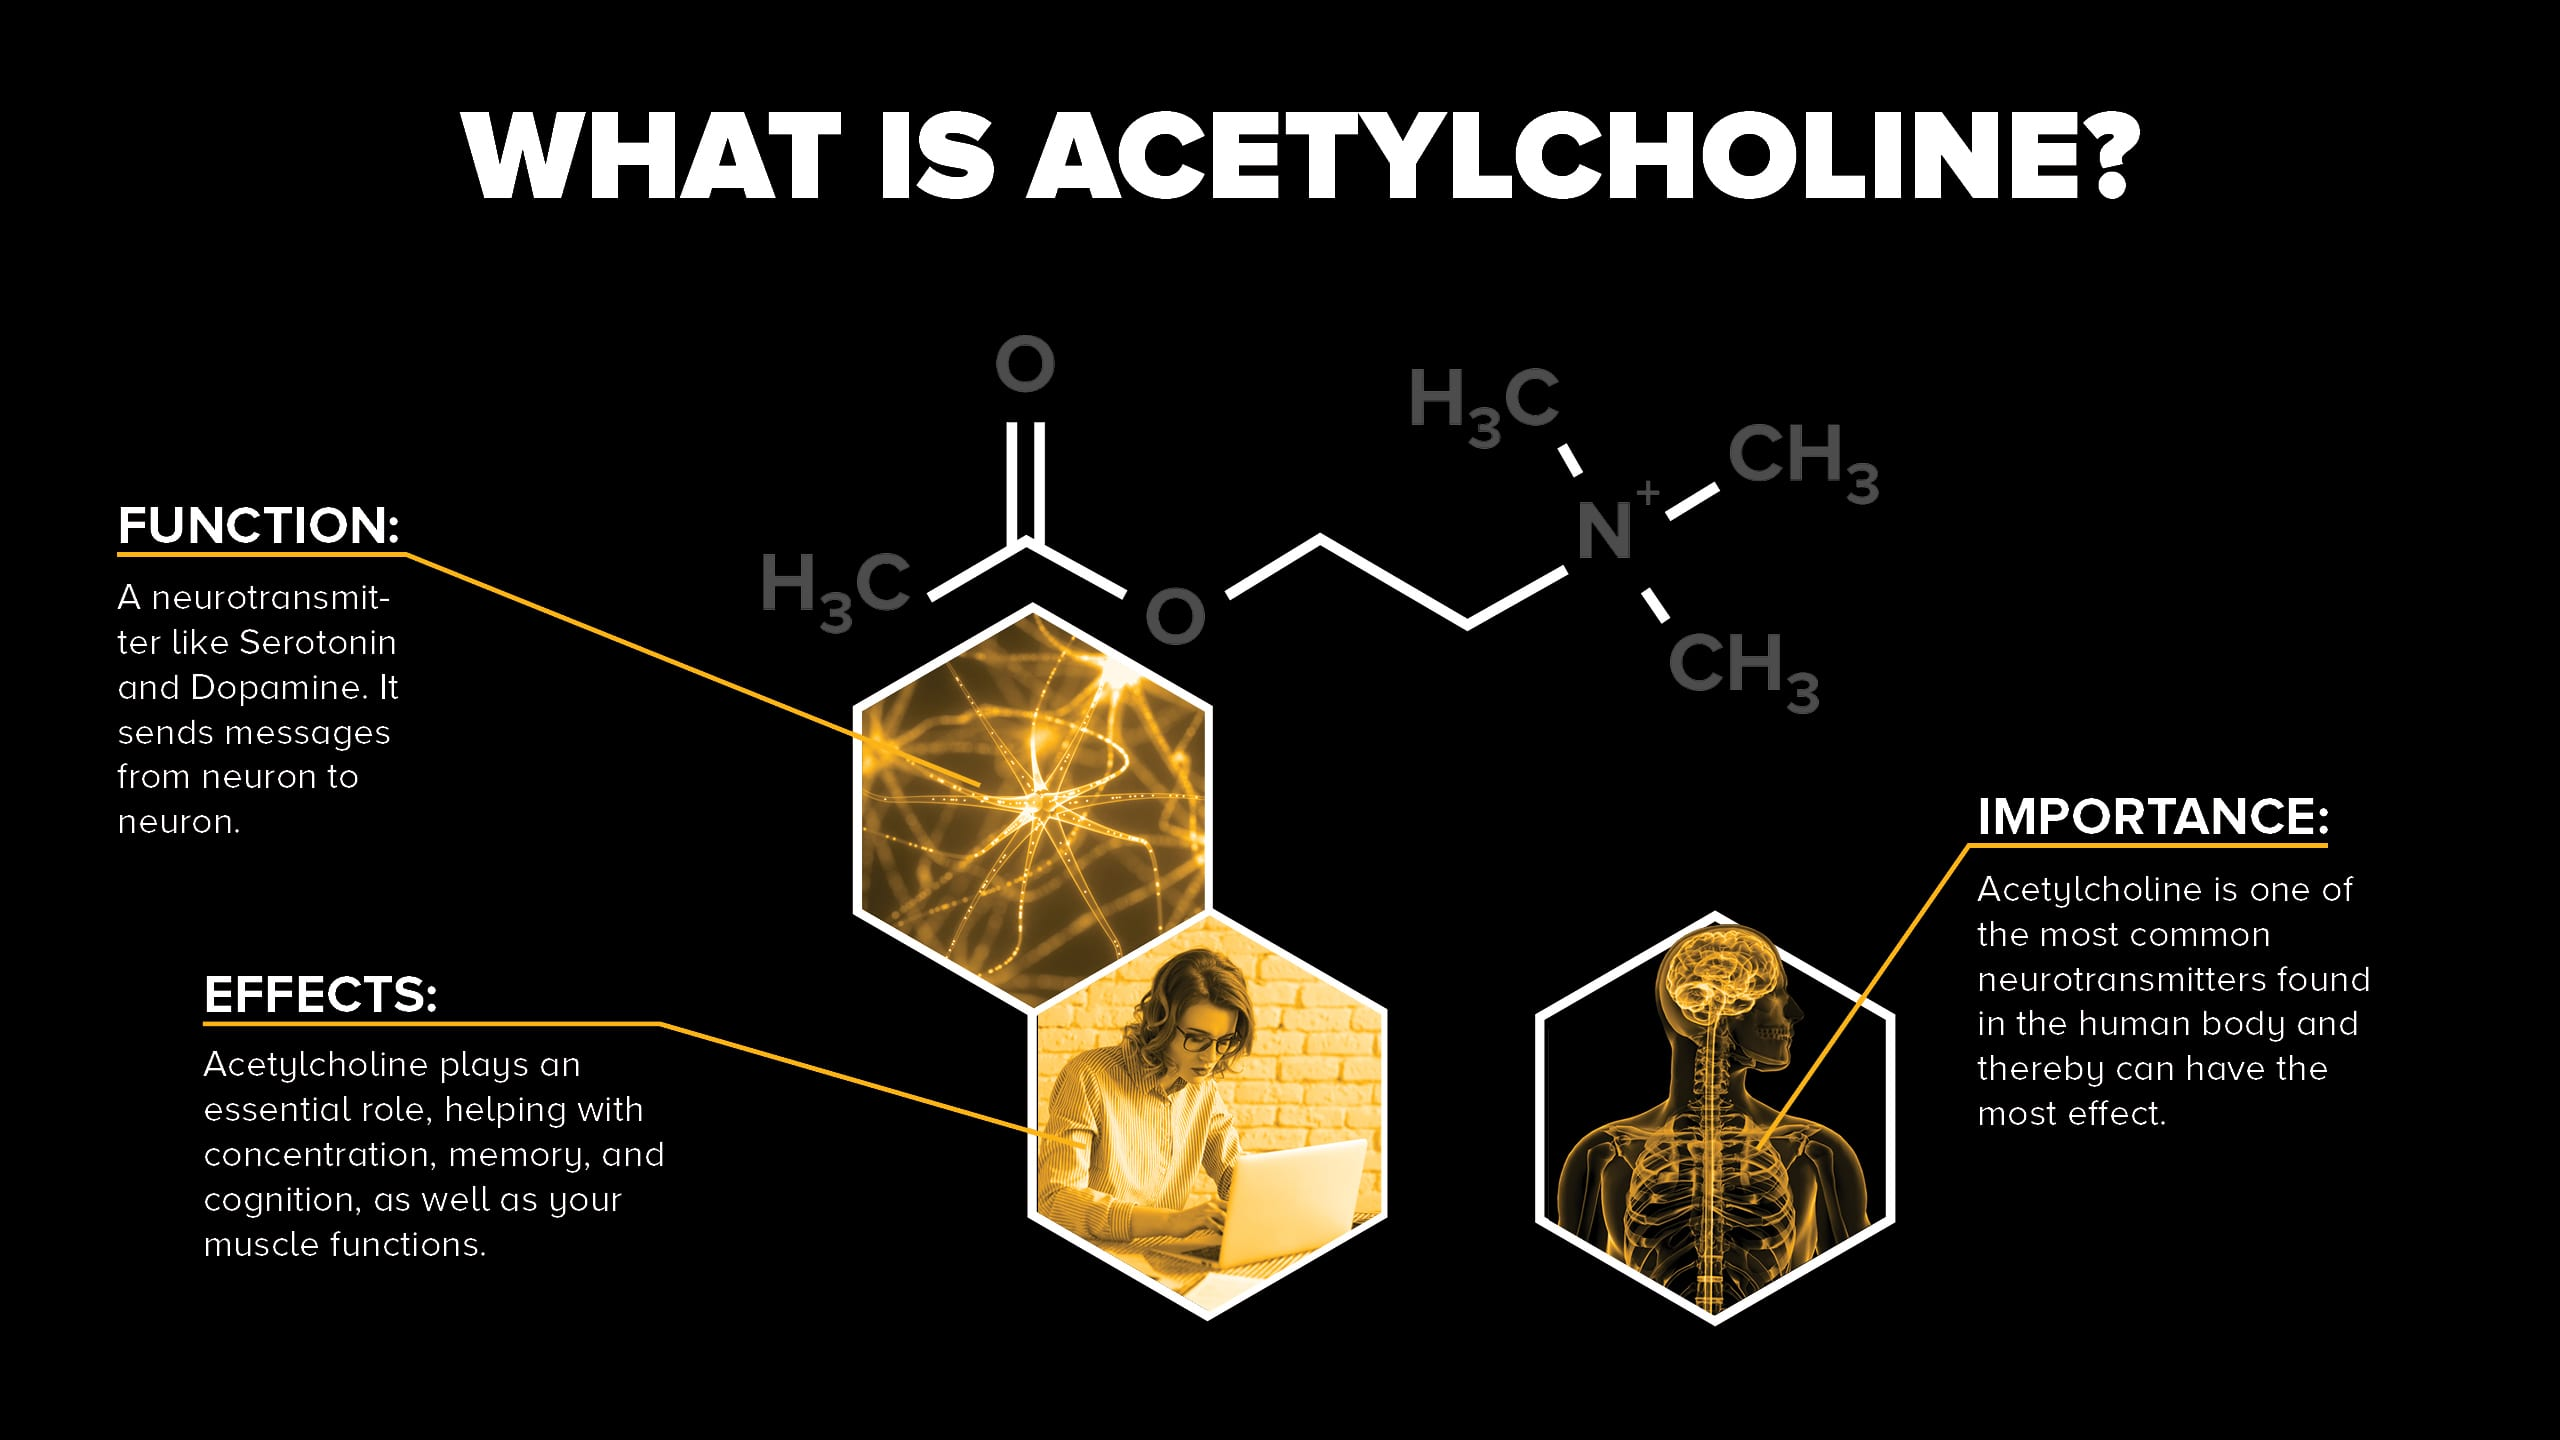 What is Acetylcholine?